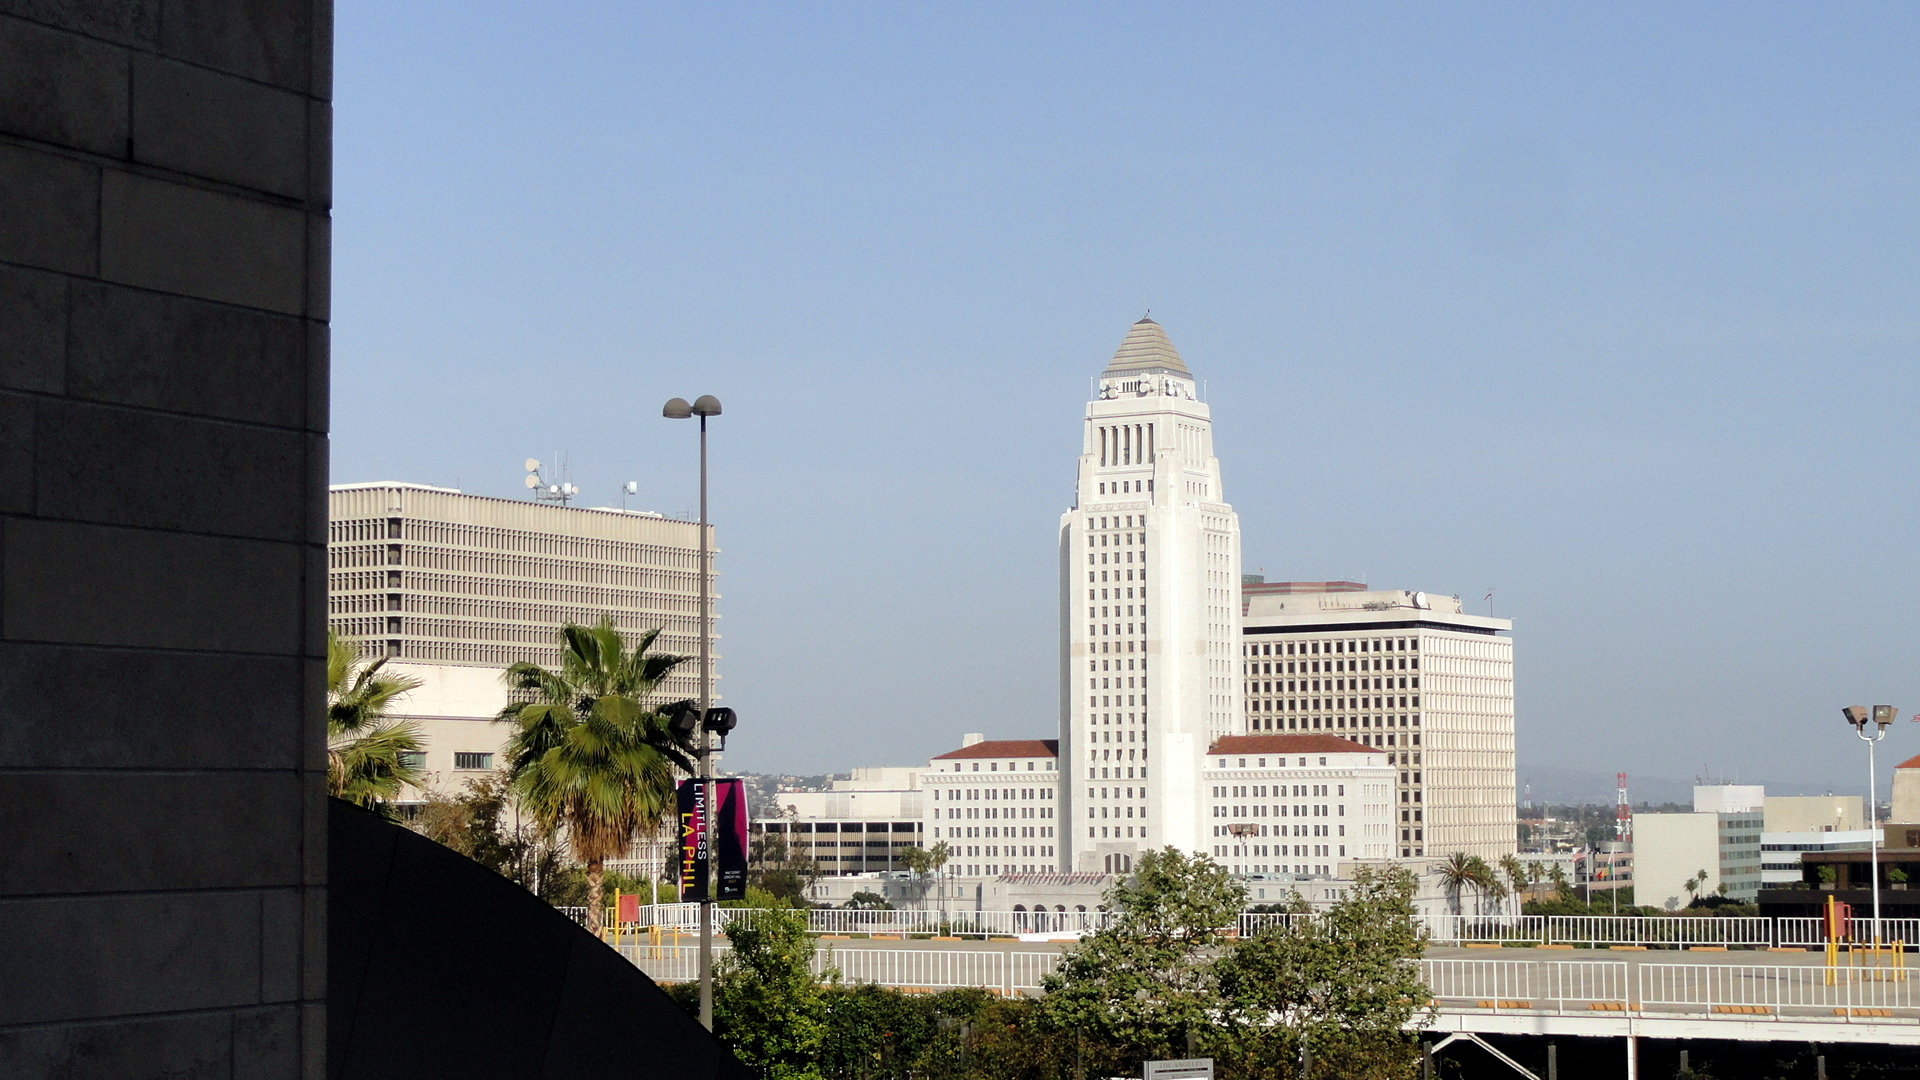 LA City Hall view from WDCH